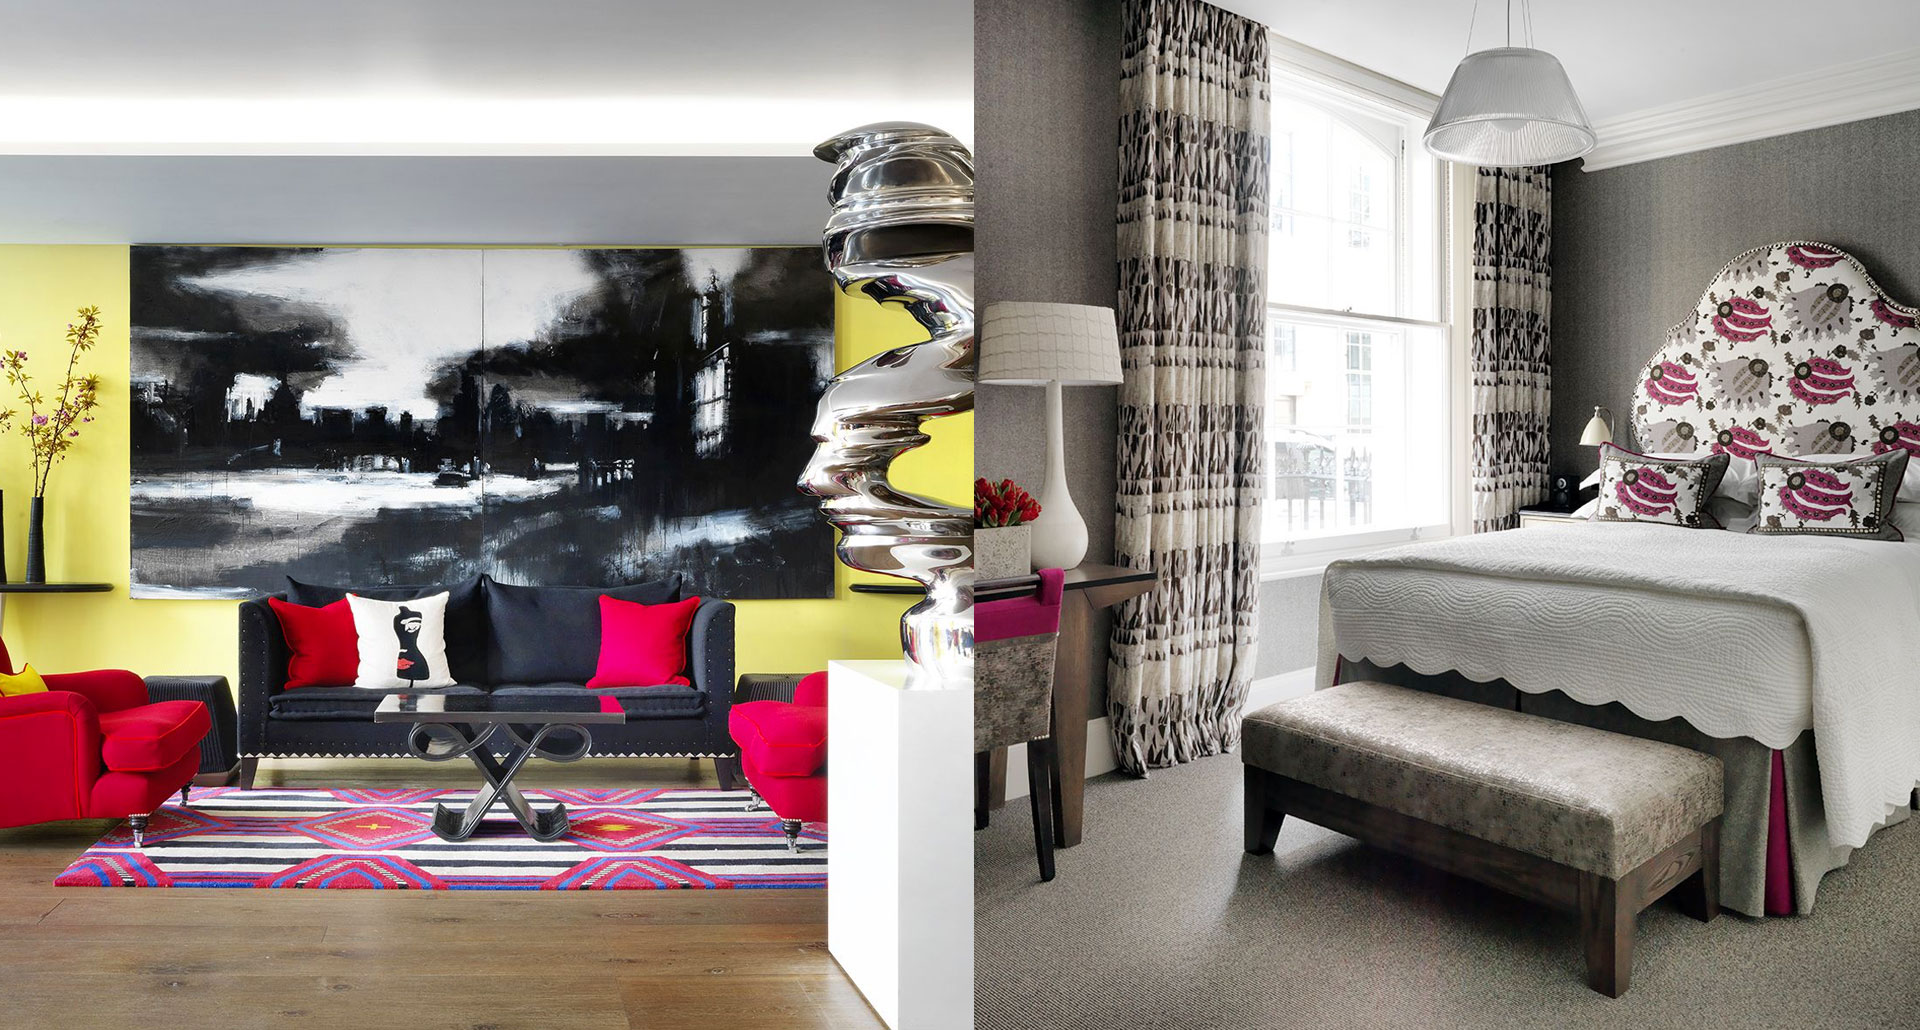 Haymarket Hotel boutique hotel in London, England